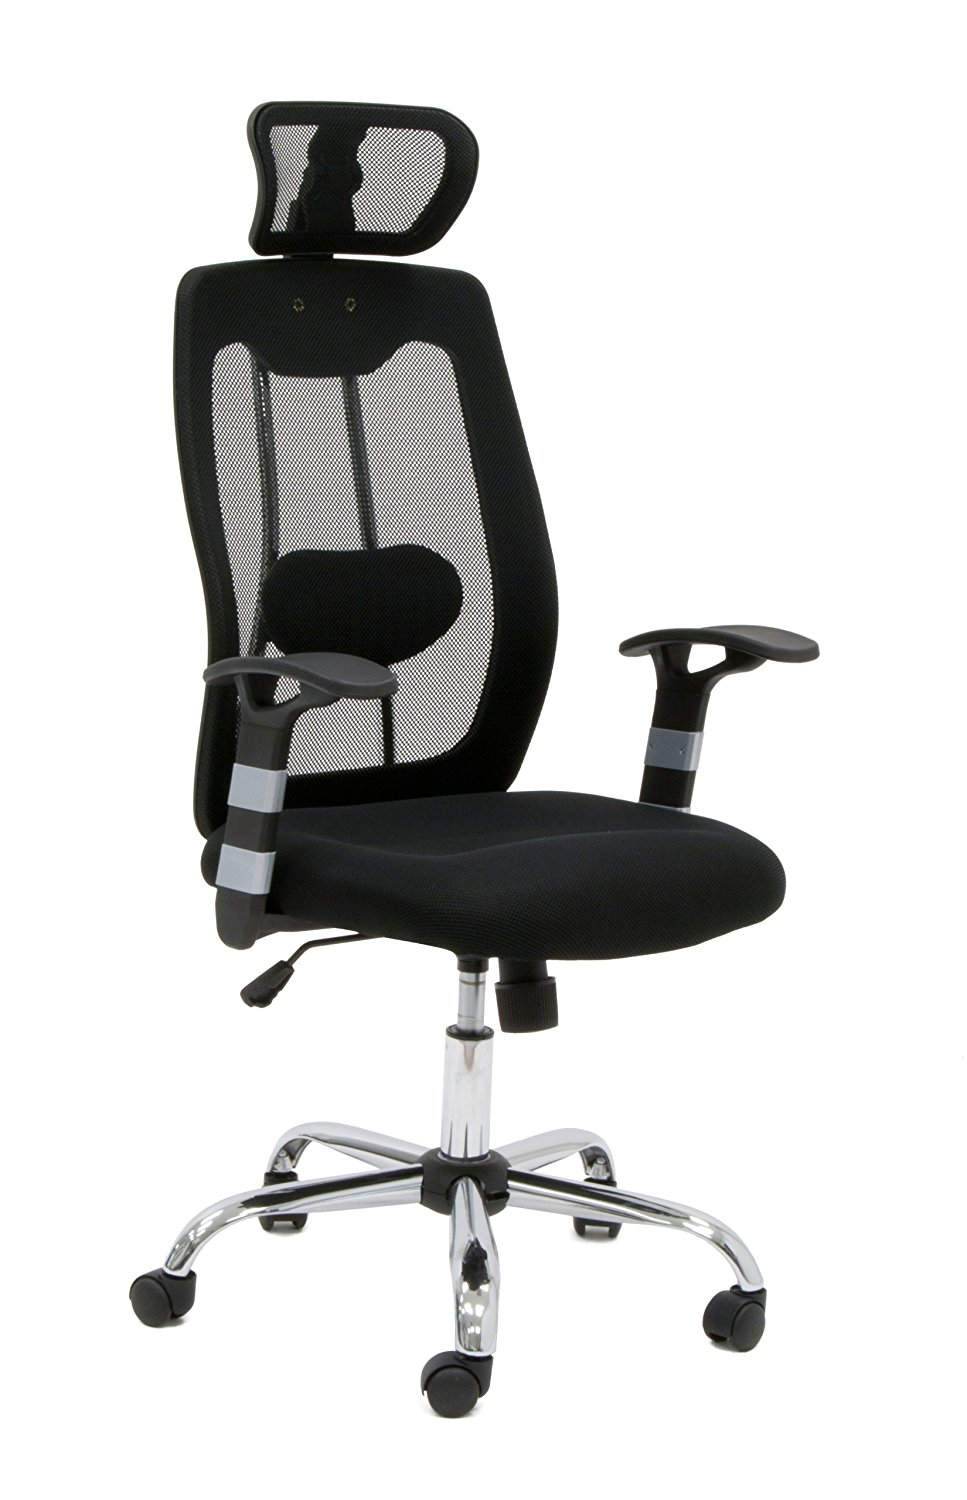 Best Chair For Home Recording Studio StayOnBeatcom : chair2 <strong>Grahl</strong> Chairs from www.stayonbeat.com size 967 x 1500 jpeg 125kB